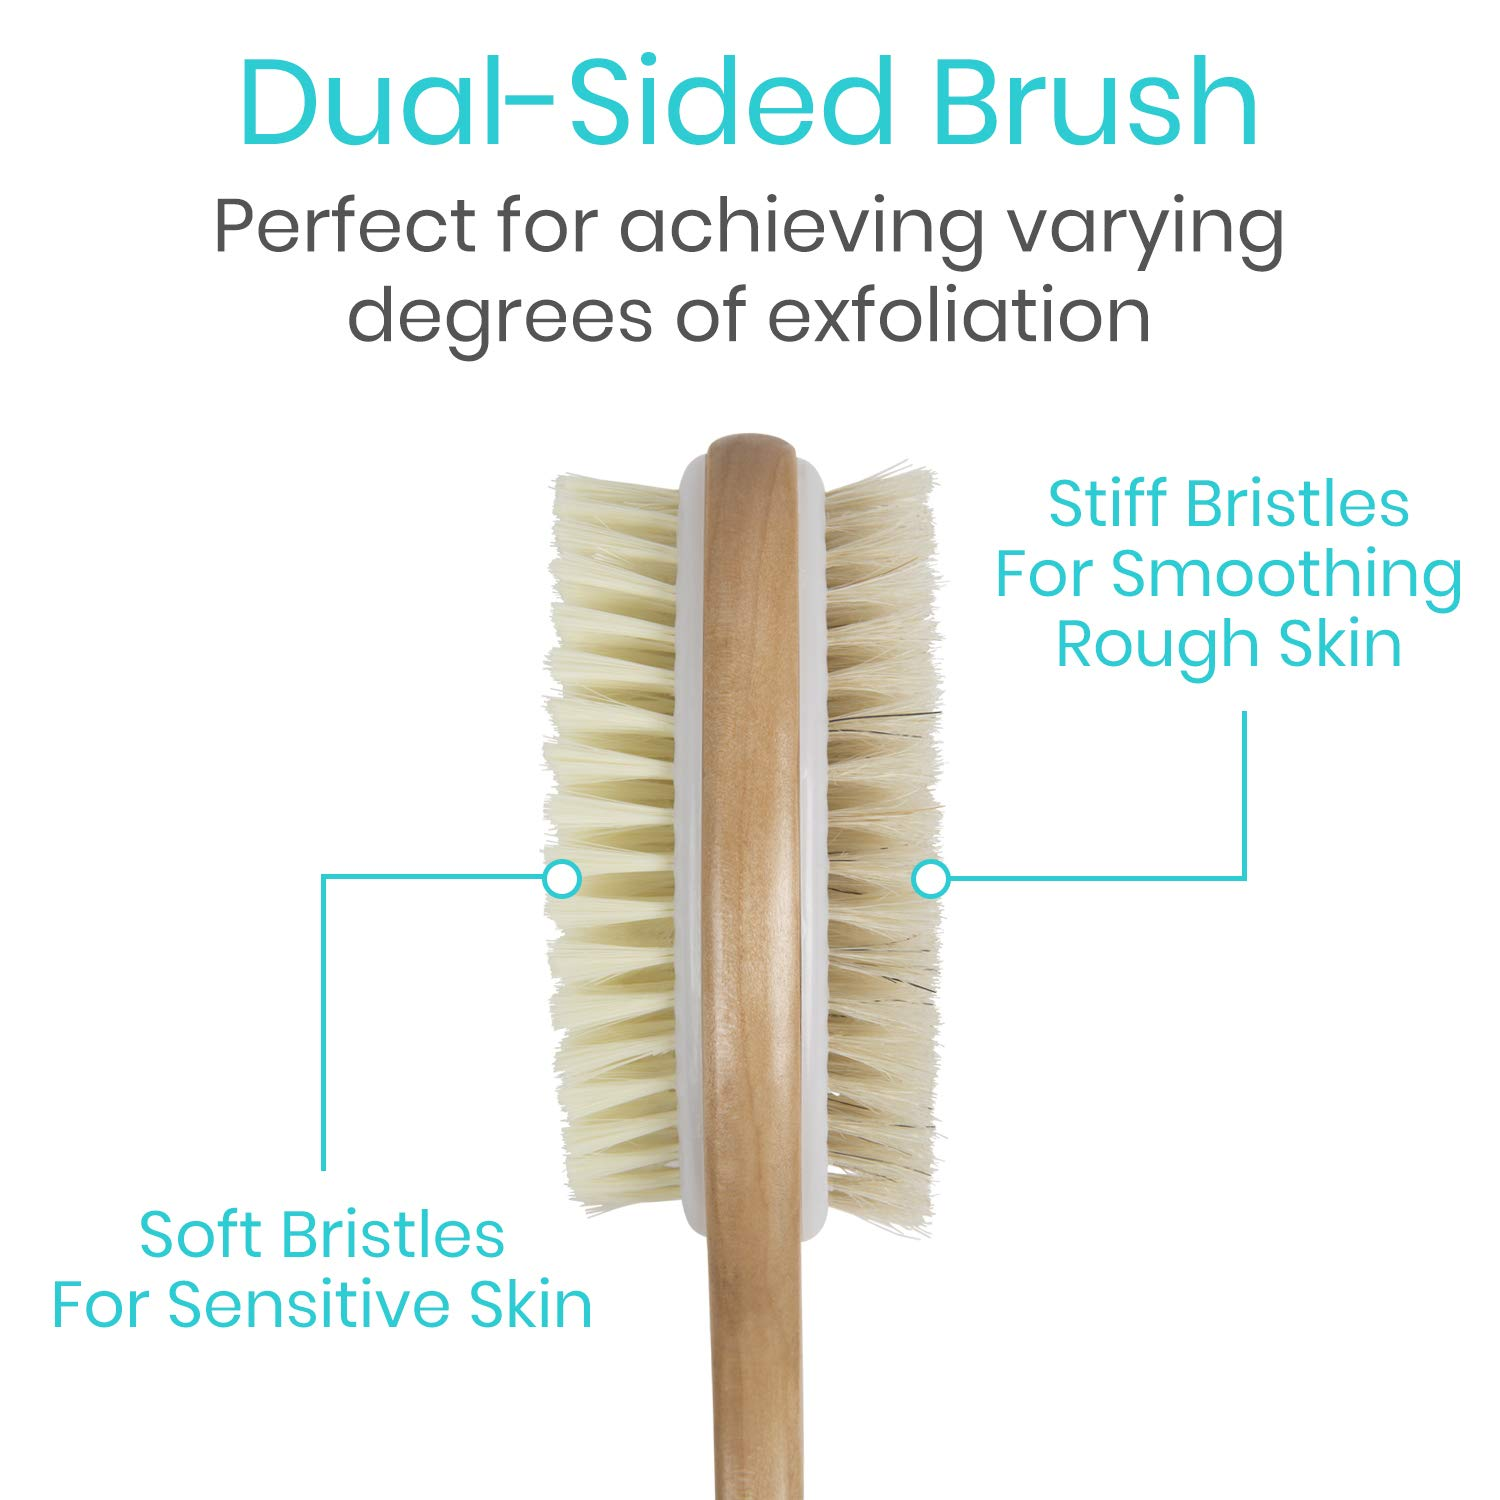 Vive Body Brush - Dry Skin Shower Exfoliator - Bath Scrubber For Wash Brushing, Exfoliating, Cellulite, Foot Scrub, Leg Exfoliant - Soft and Stiff Massage Bristles - Wooden Long Handle